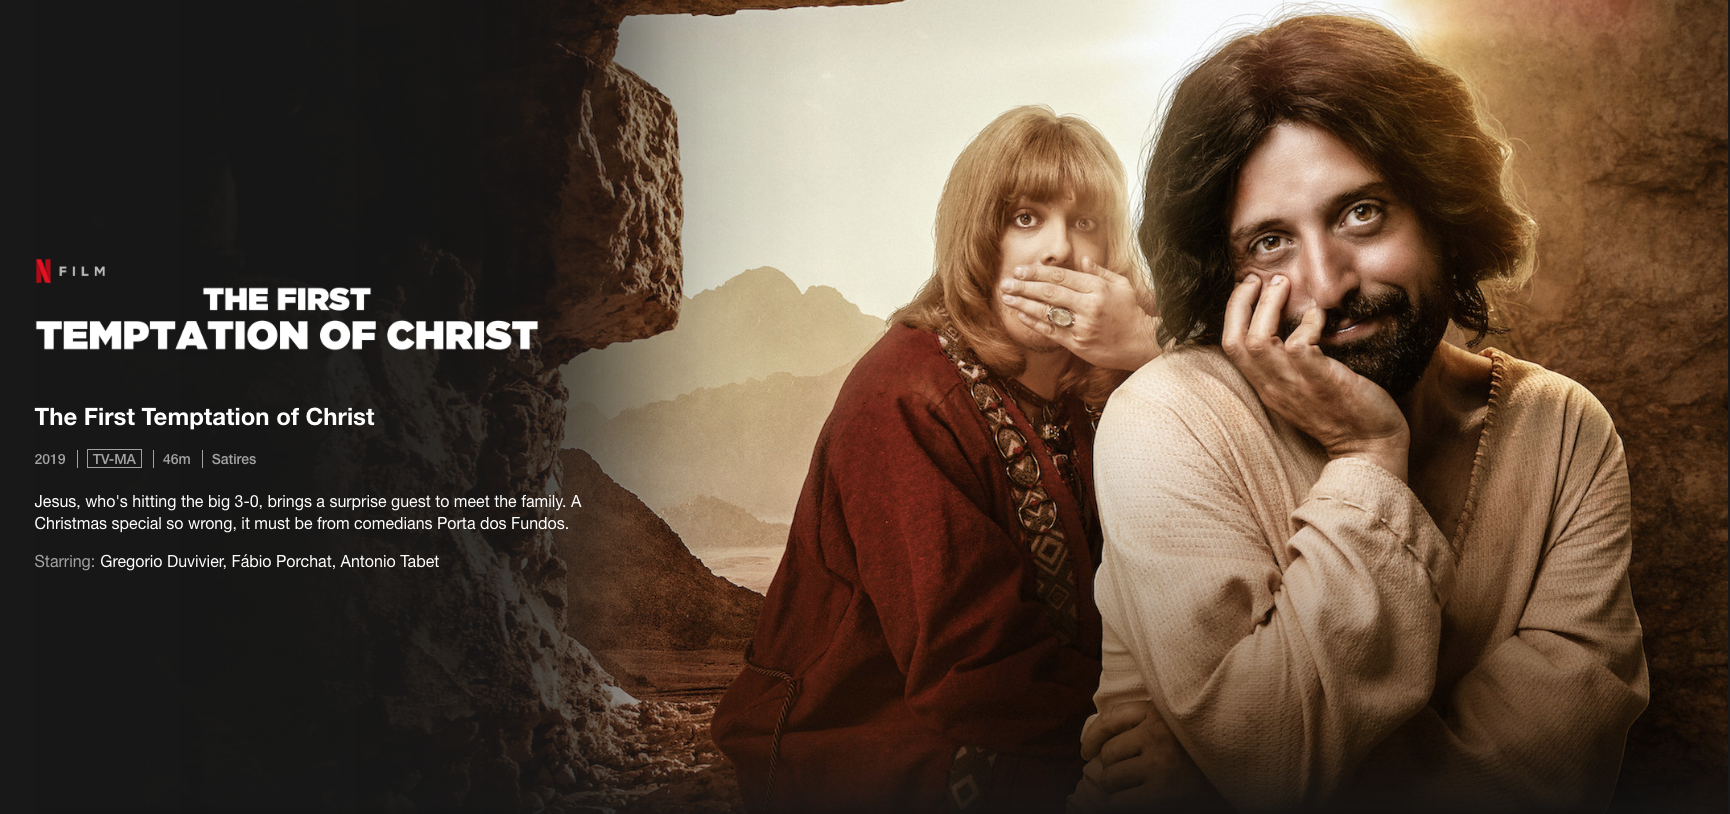 Netflix To Defend Gay Jesus Film In Brazil Supreme Court Fortune Jesus christ was the founder of christianity, declared to be the son of god in new testament. netflix to defend gay jesus film in